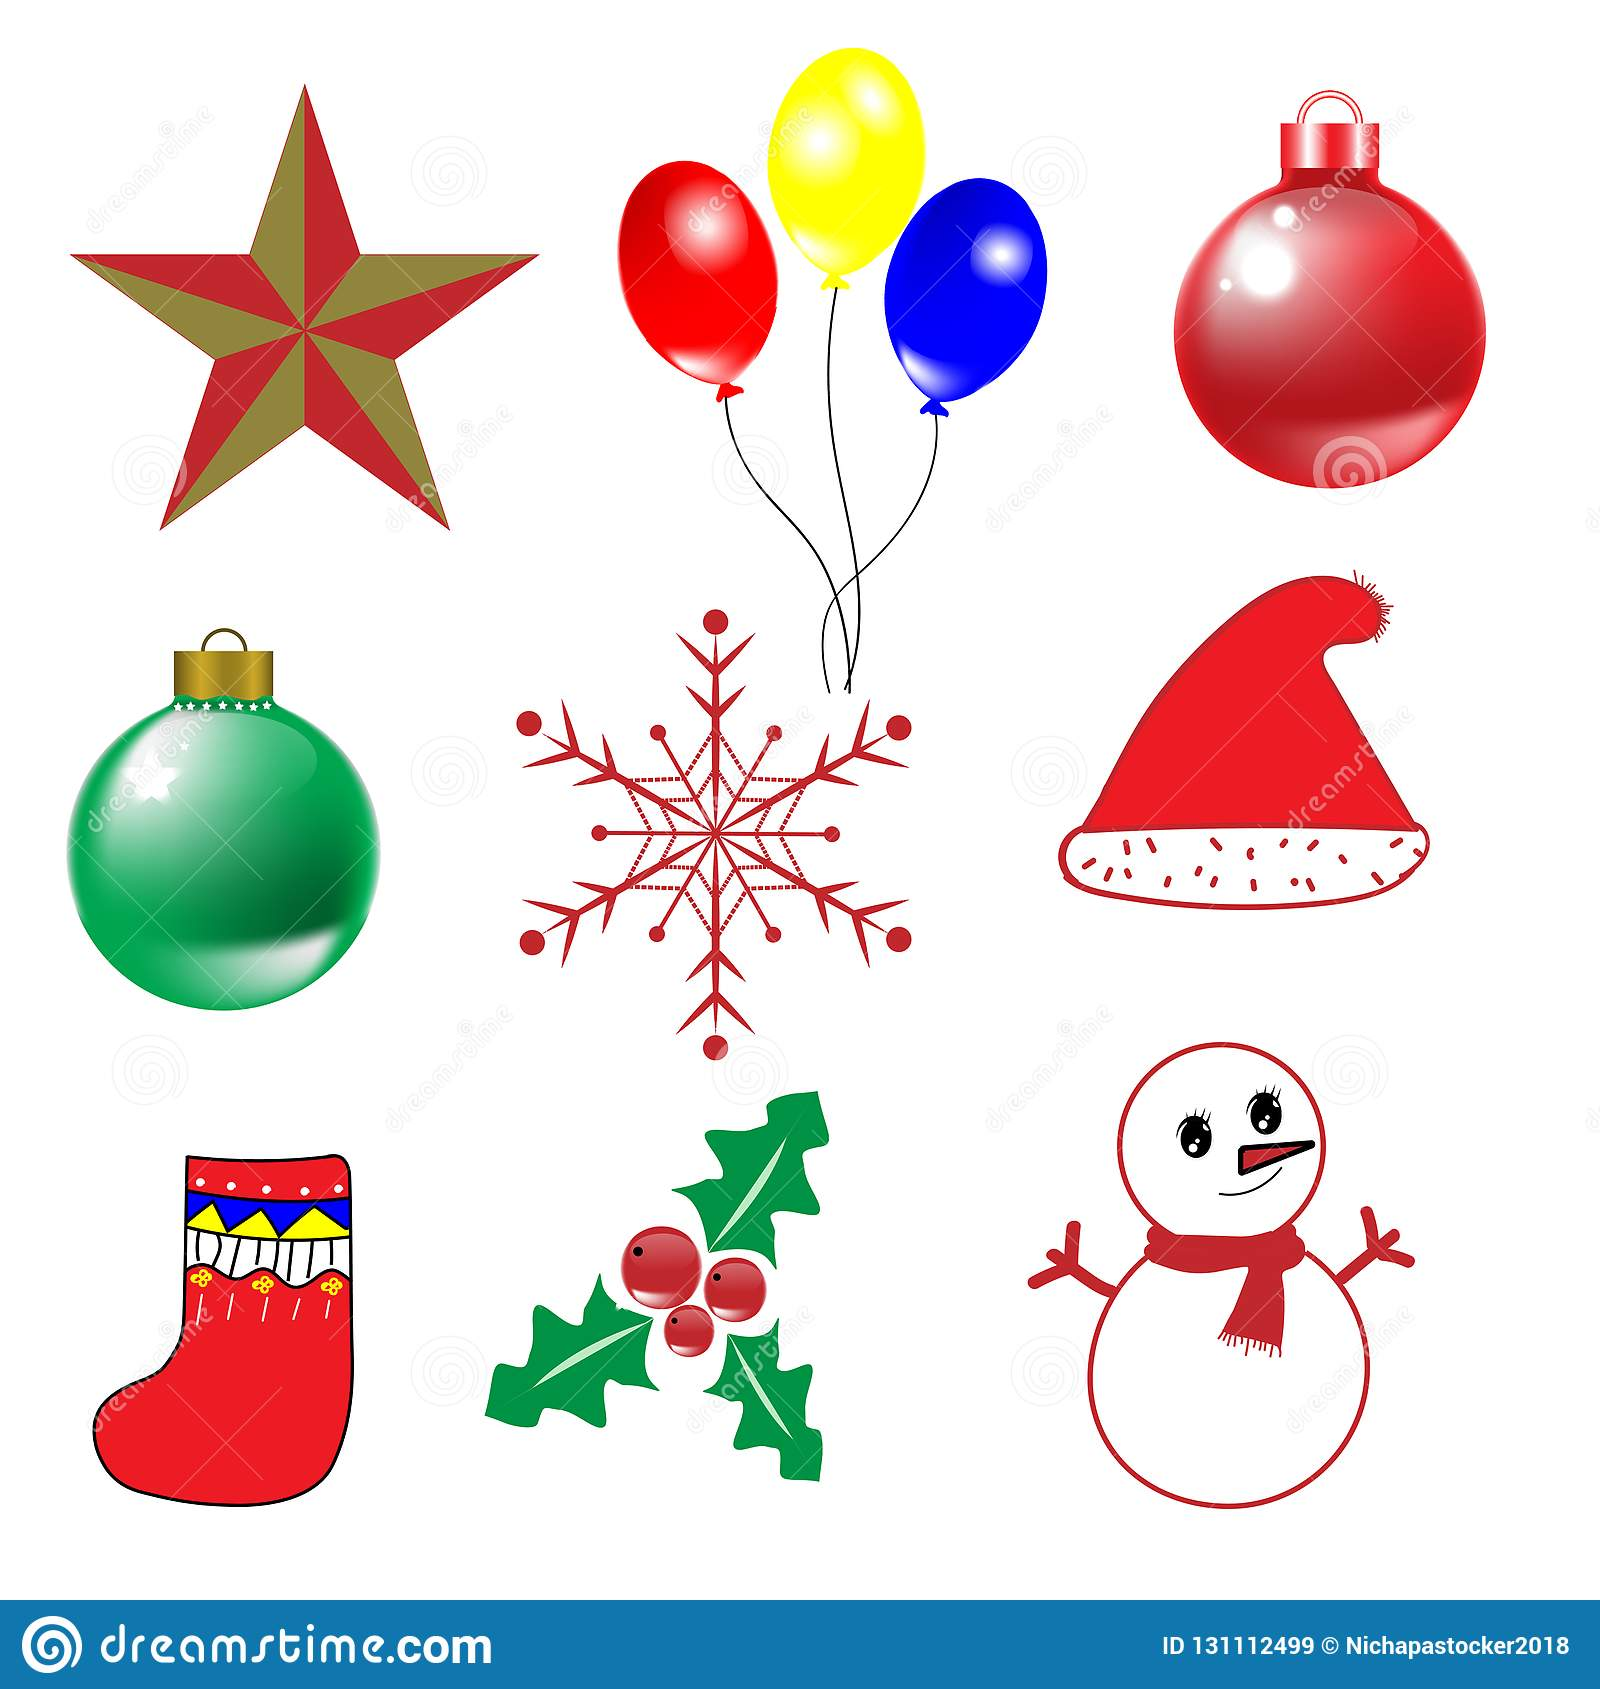 9 objects for Christmas and happy new year vector